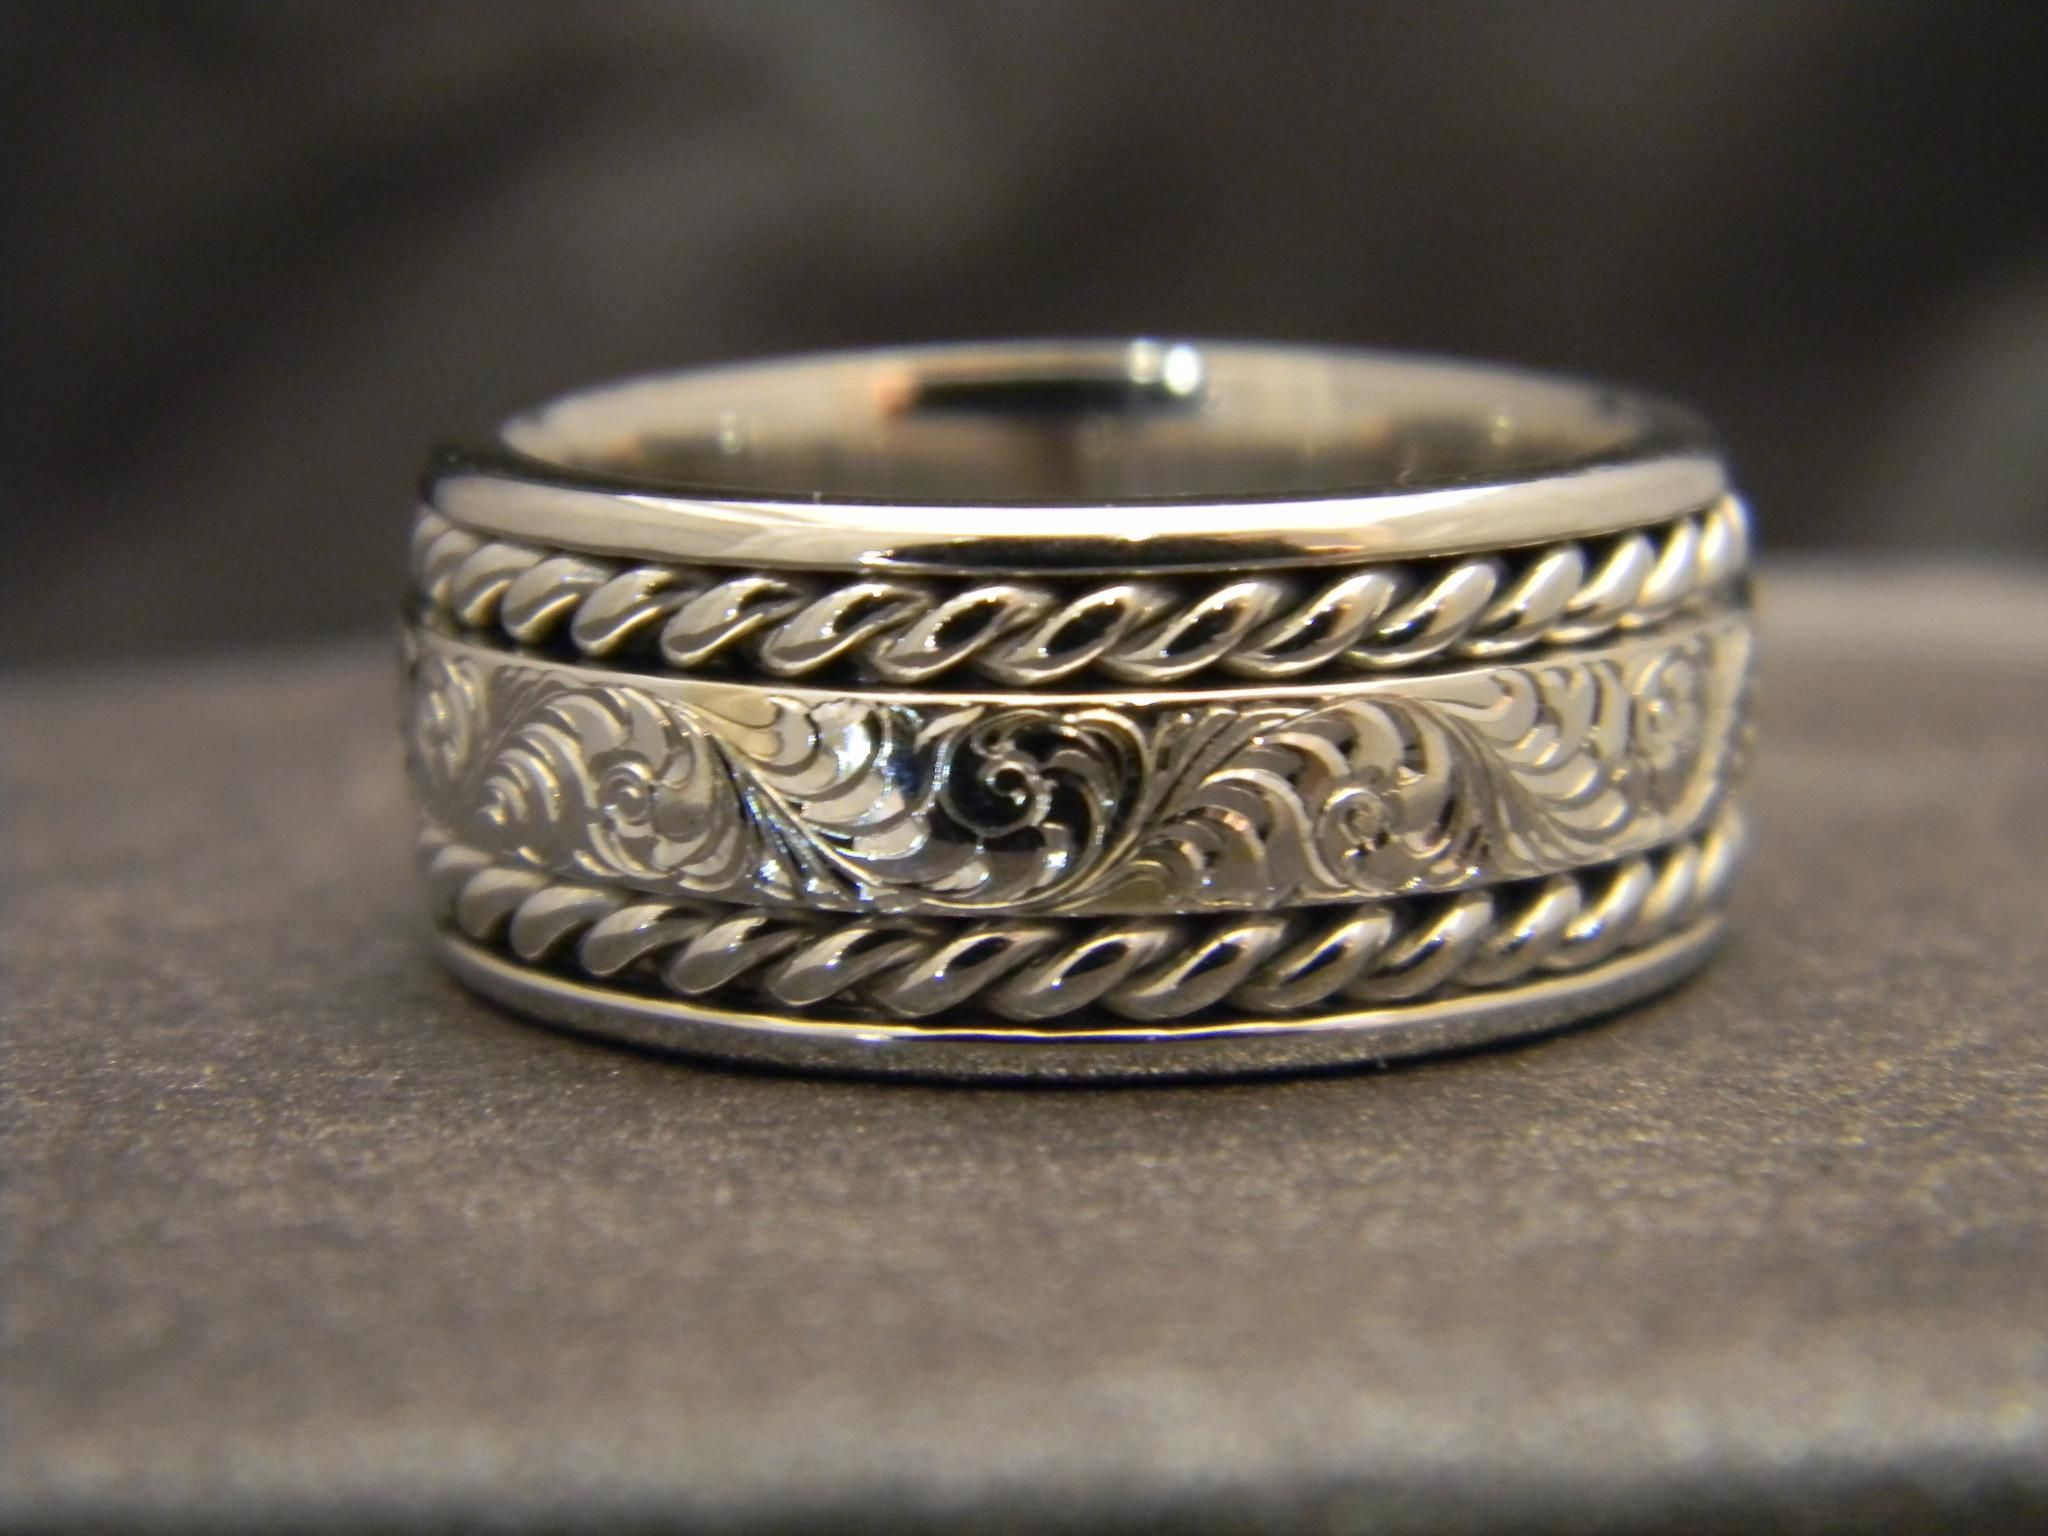 11mm 14K White Gold Jumbo Rope Ring with Fancy Scroll